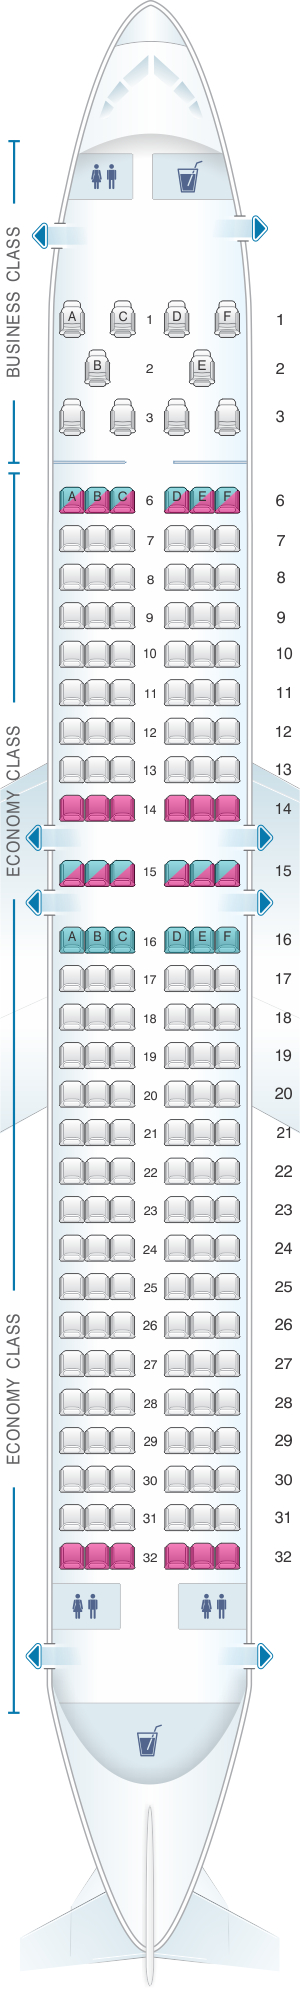 Seat map for Flydubai Boeing B737 MAX 8